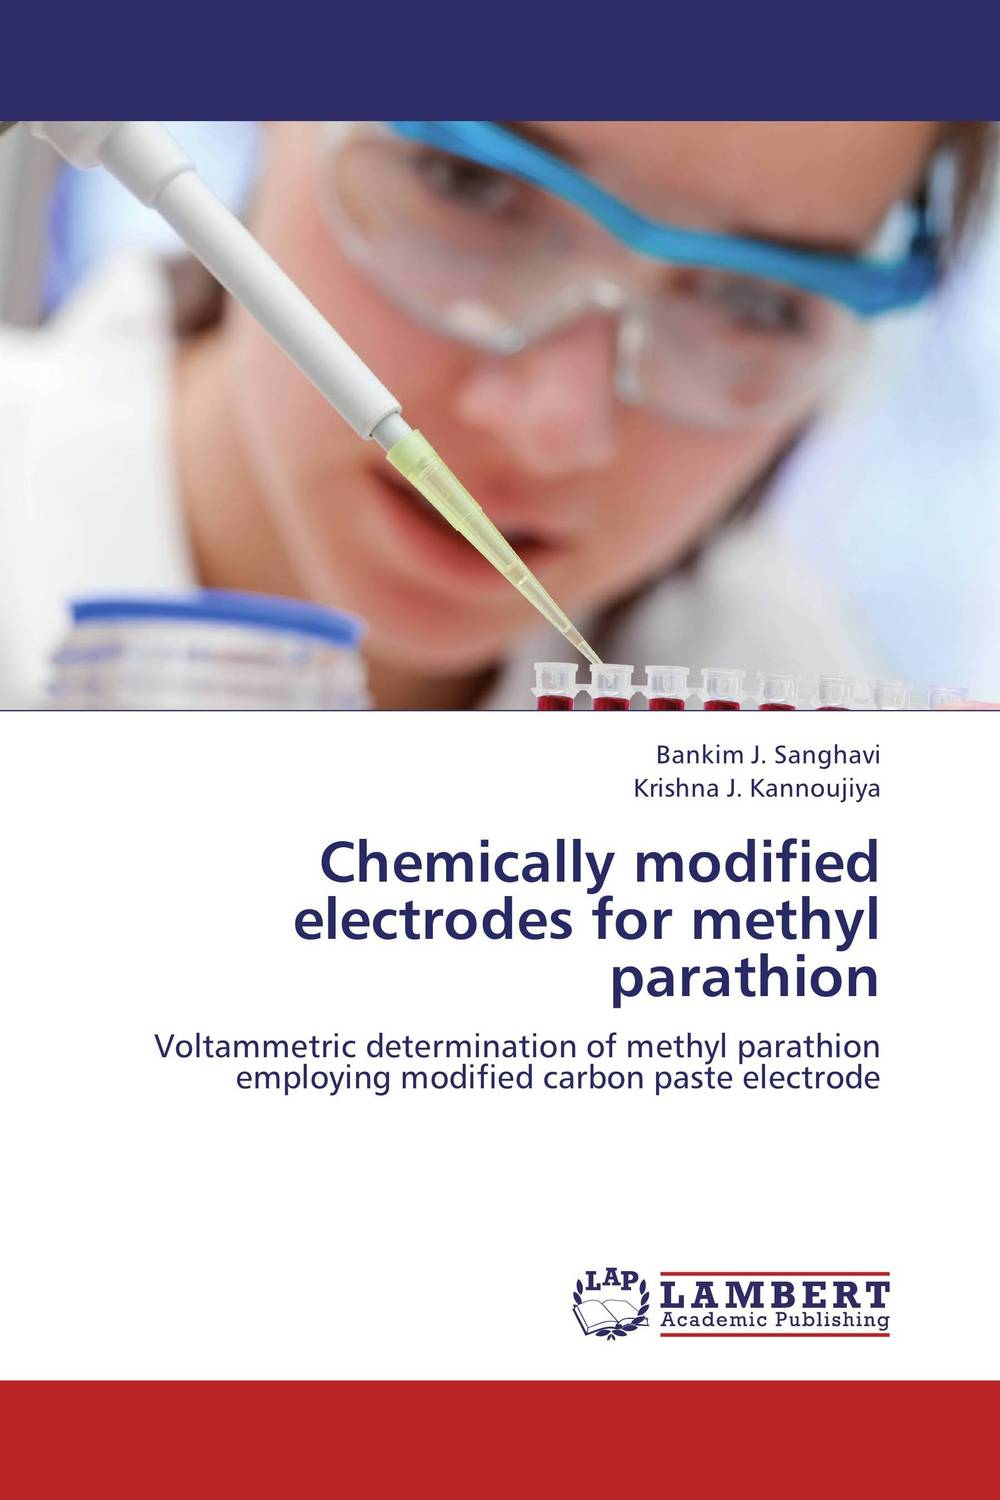 Chemically modified electrodes for methyl parathion